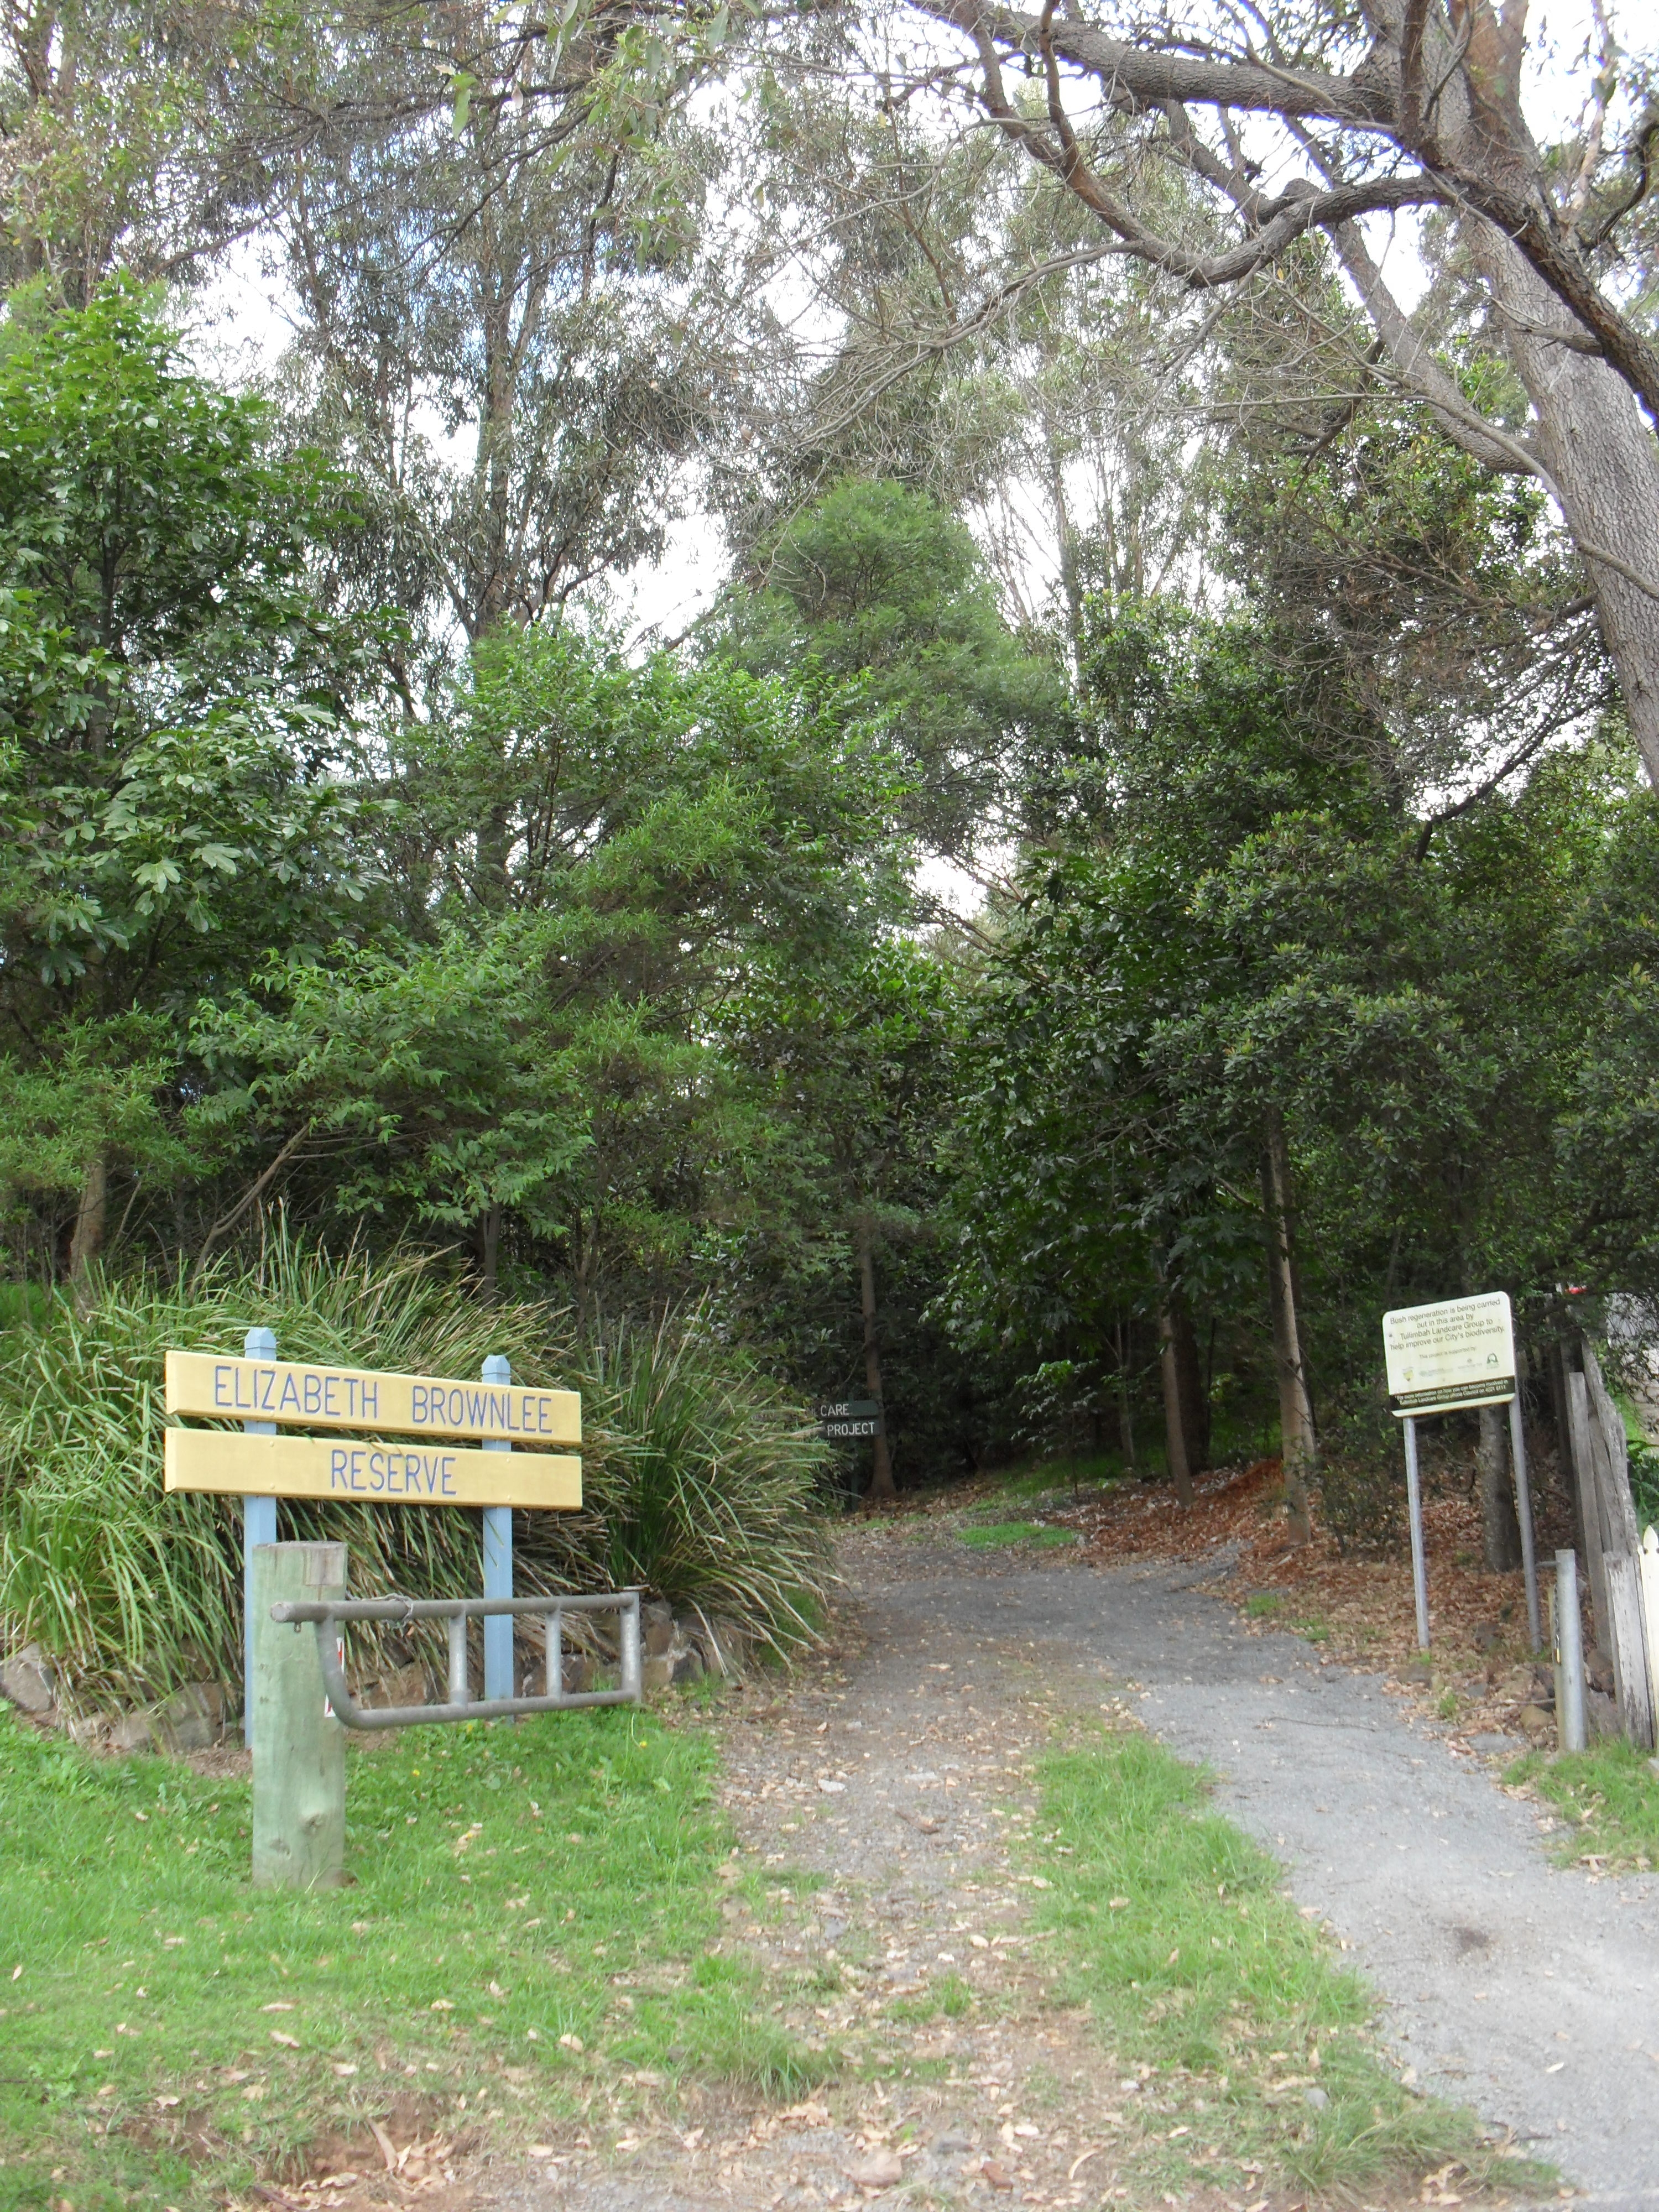 Elizabeth Brownlee entrance to the Reserve